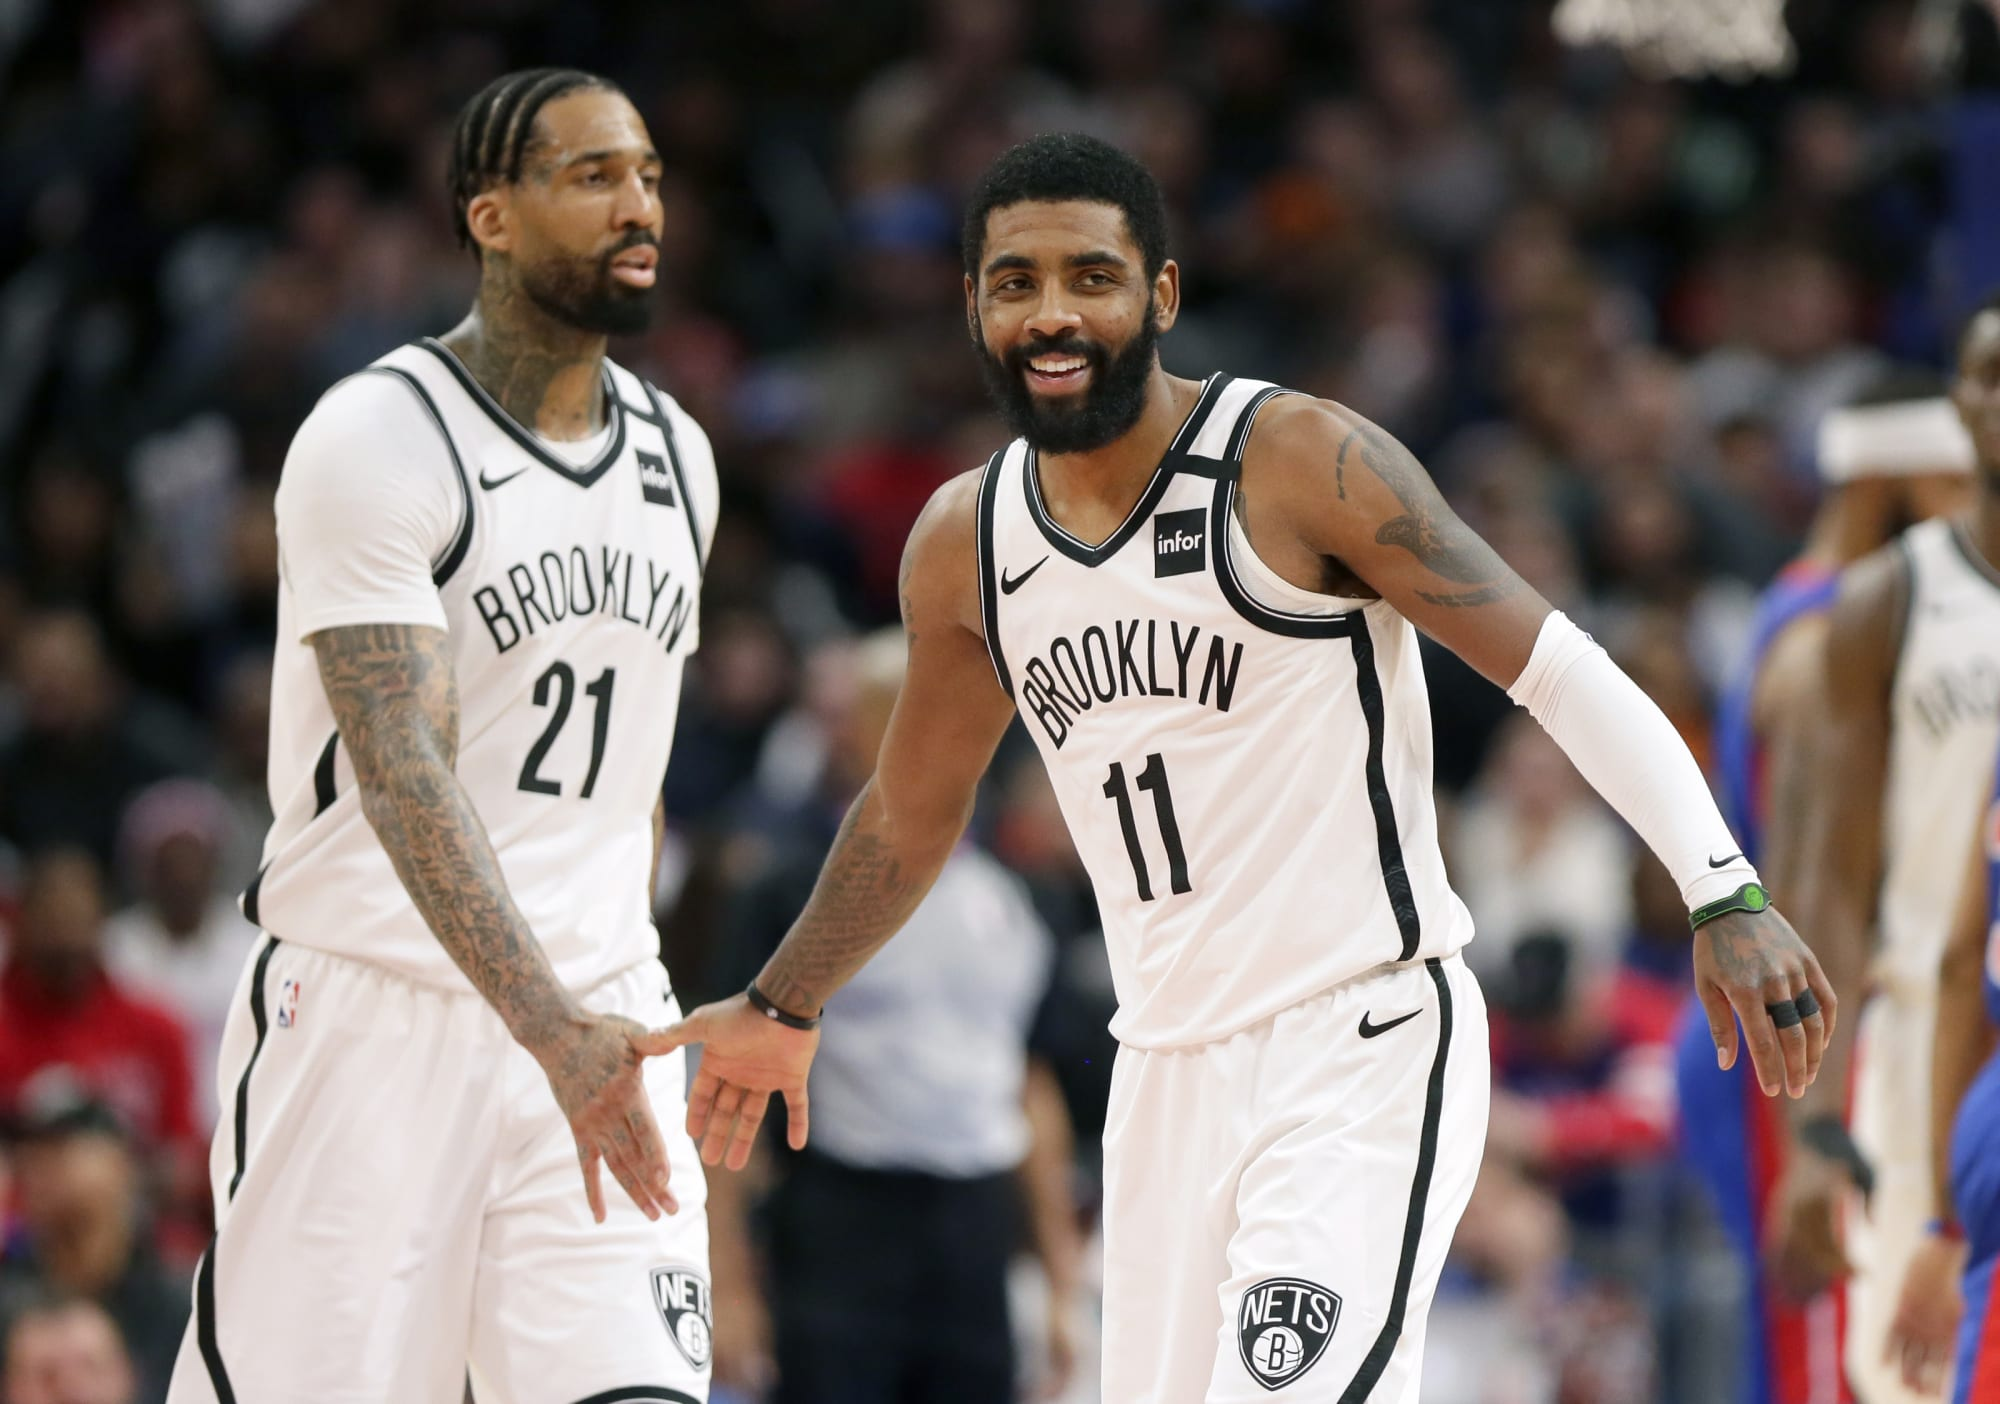 Nets News: Kyrie Irving Gets Support From Wilson Chandler